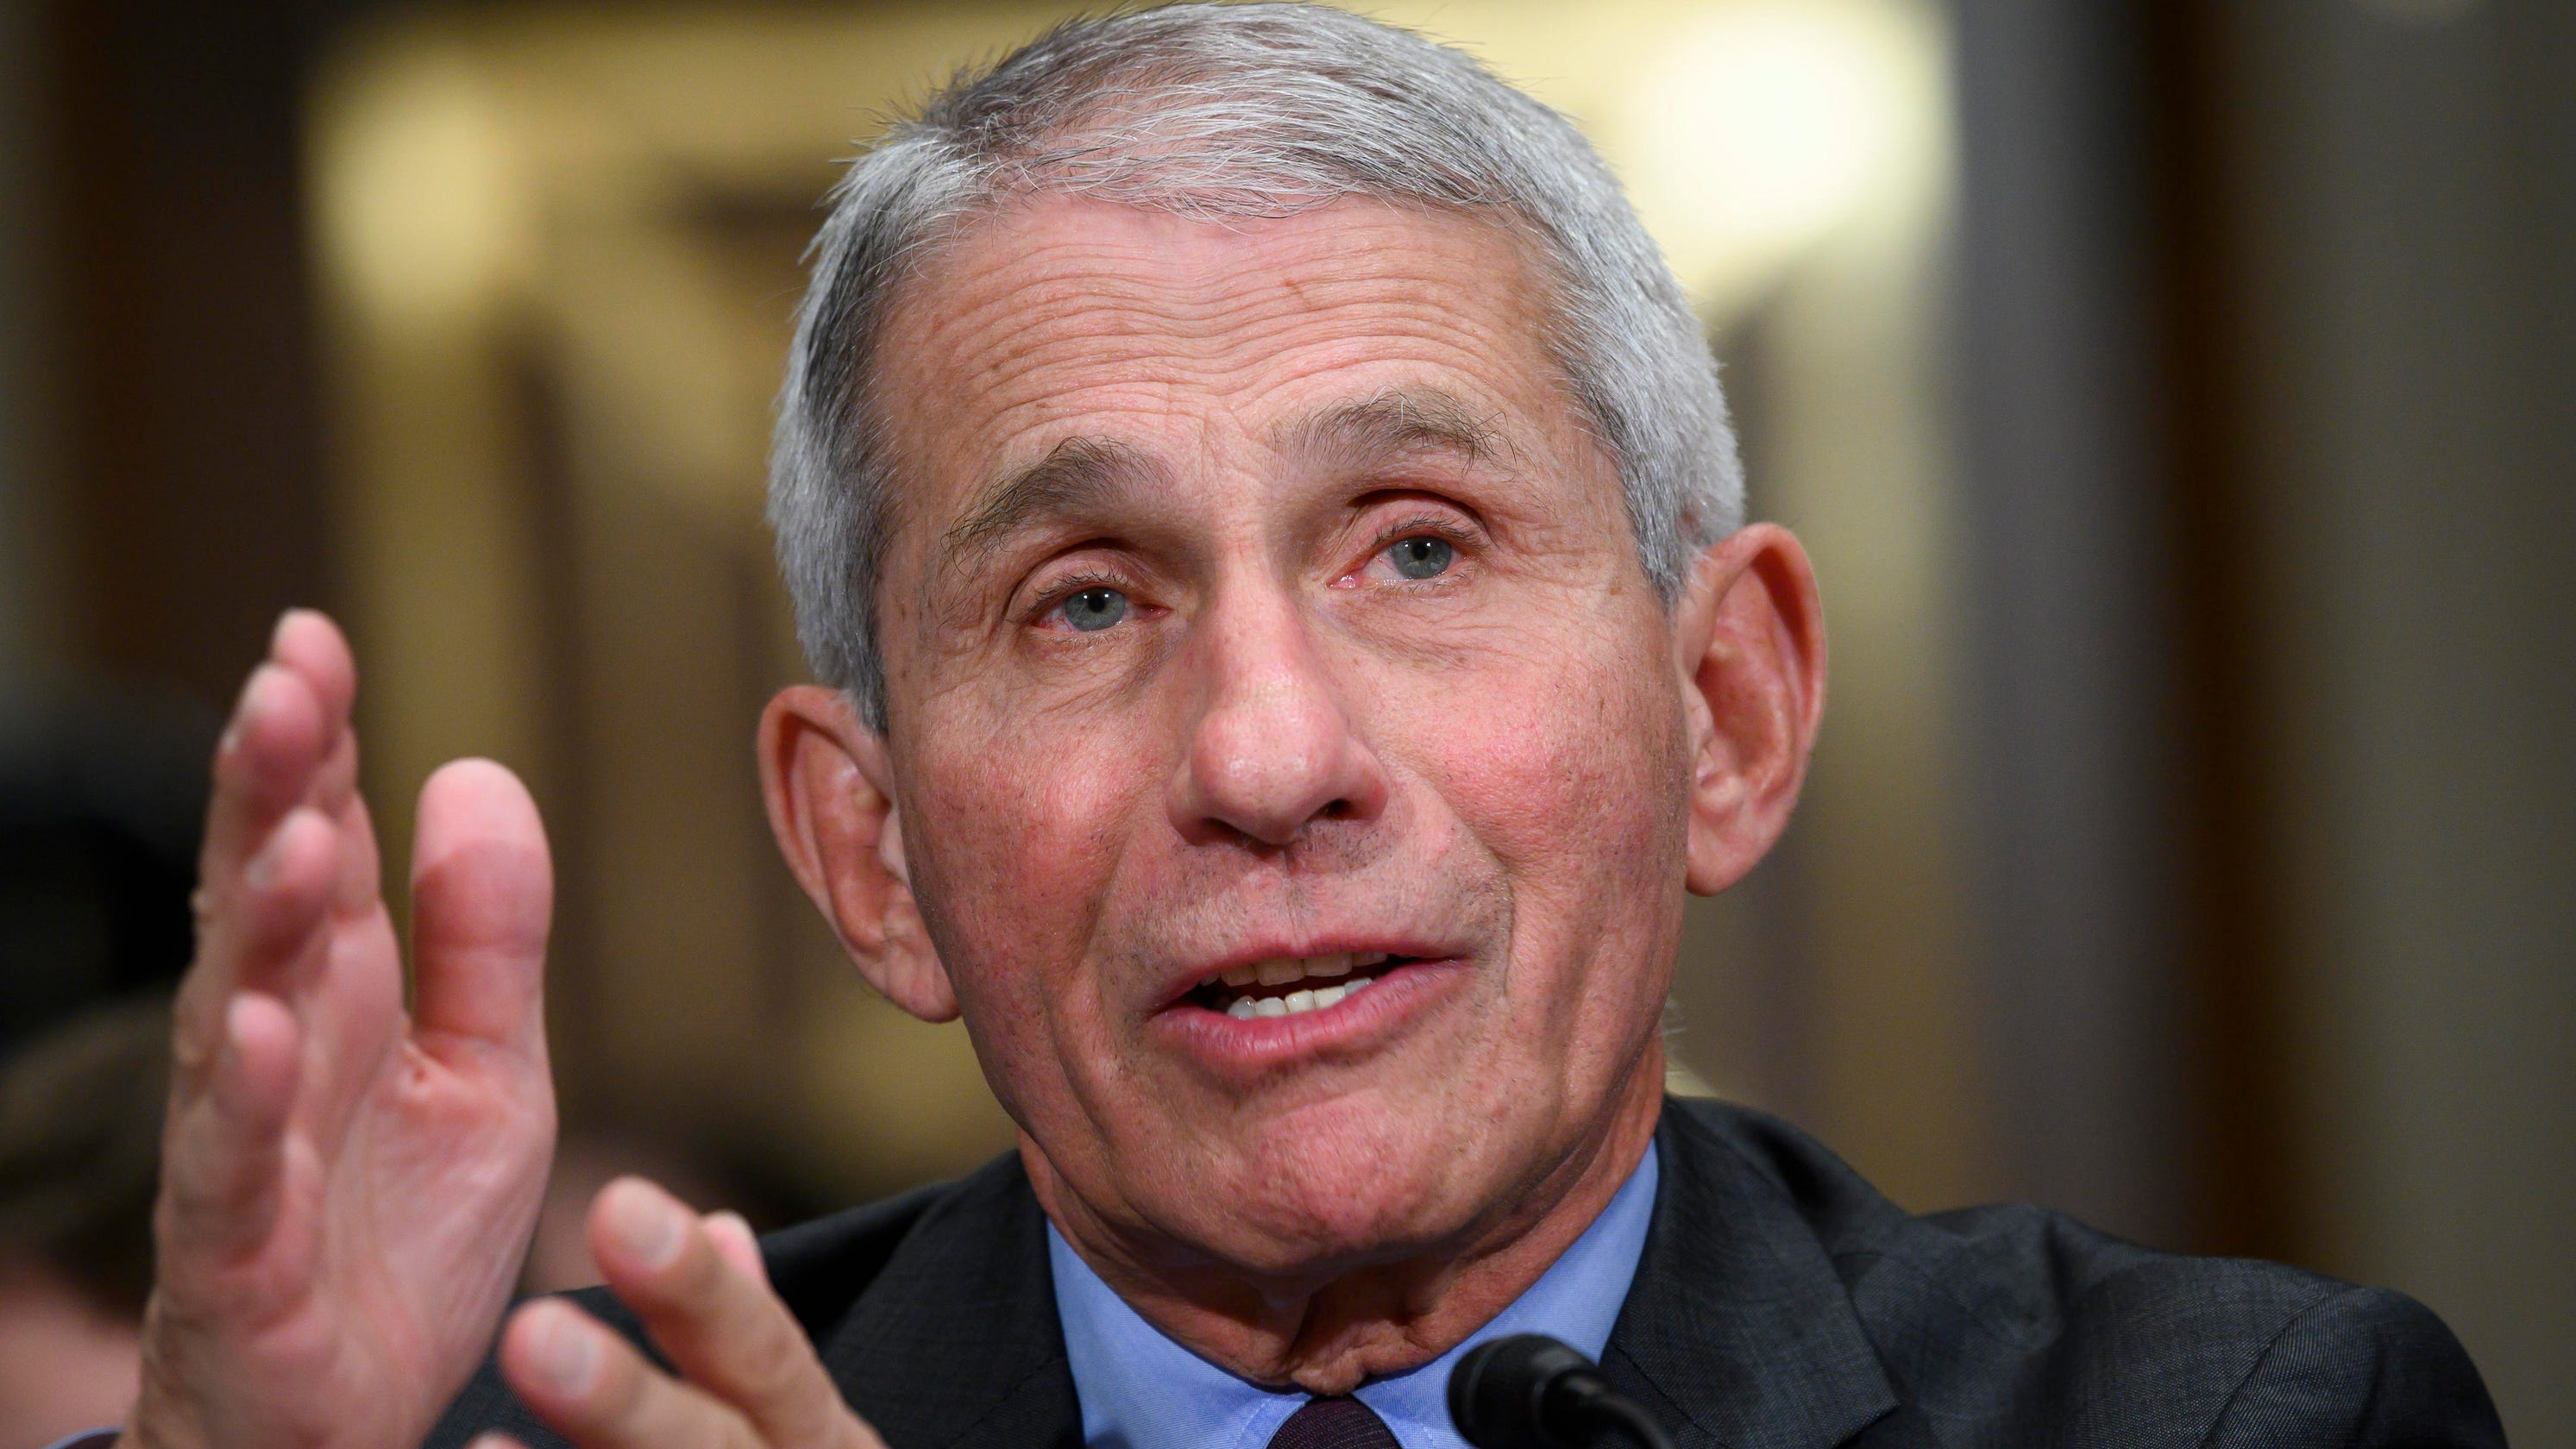 Fauci says the average American could get vaccinated against COVID-19 as soon as April: 'I would take the vaccine'